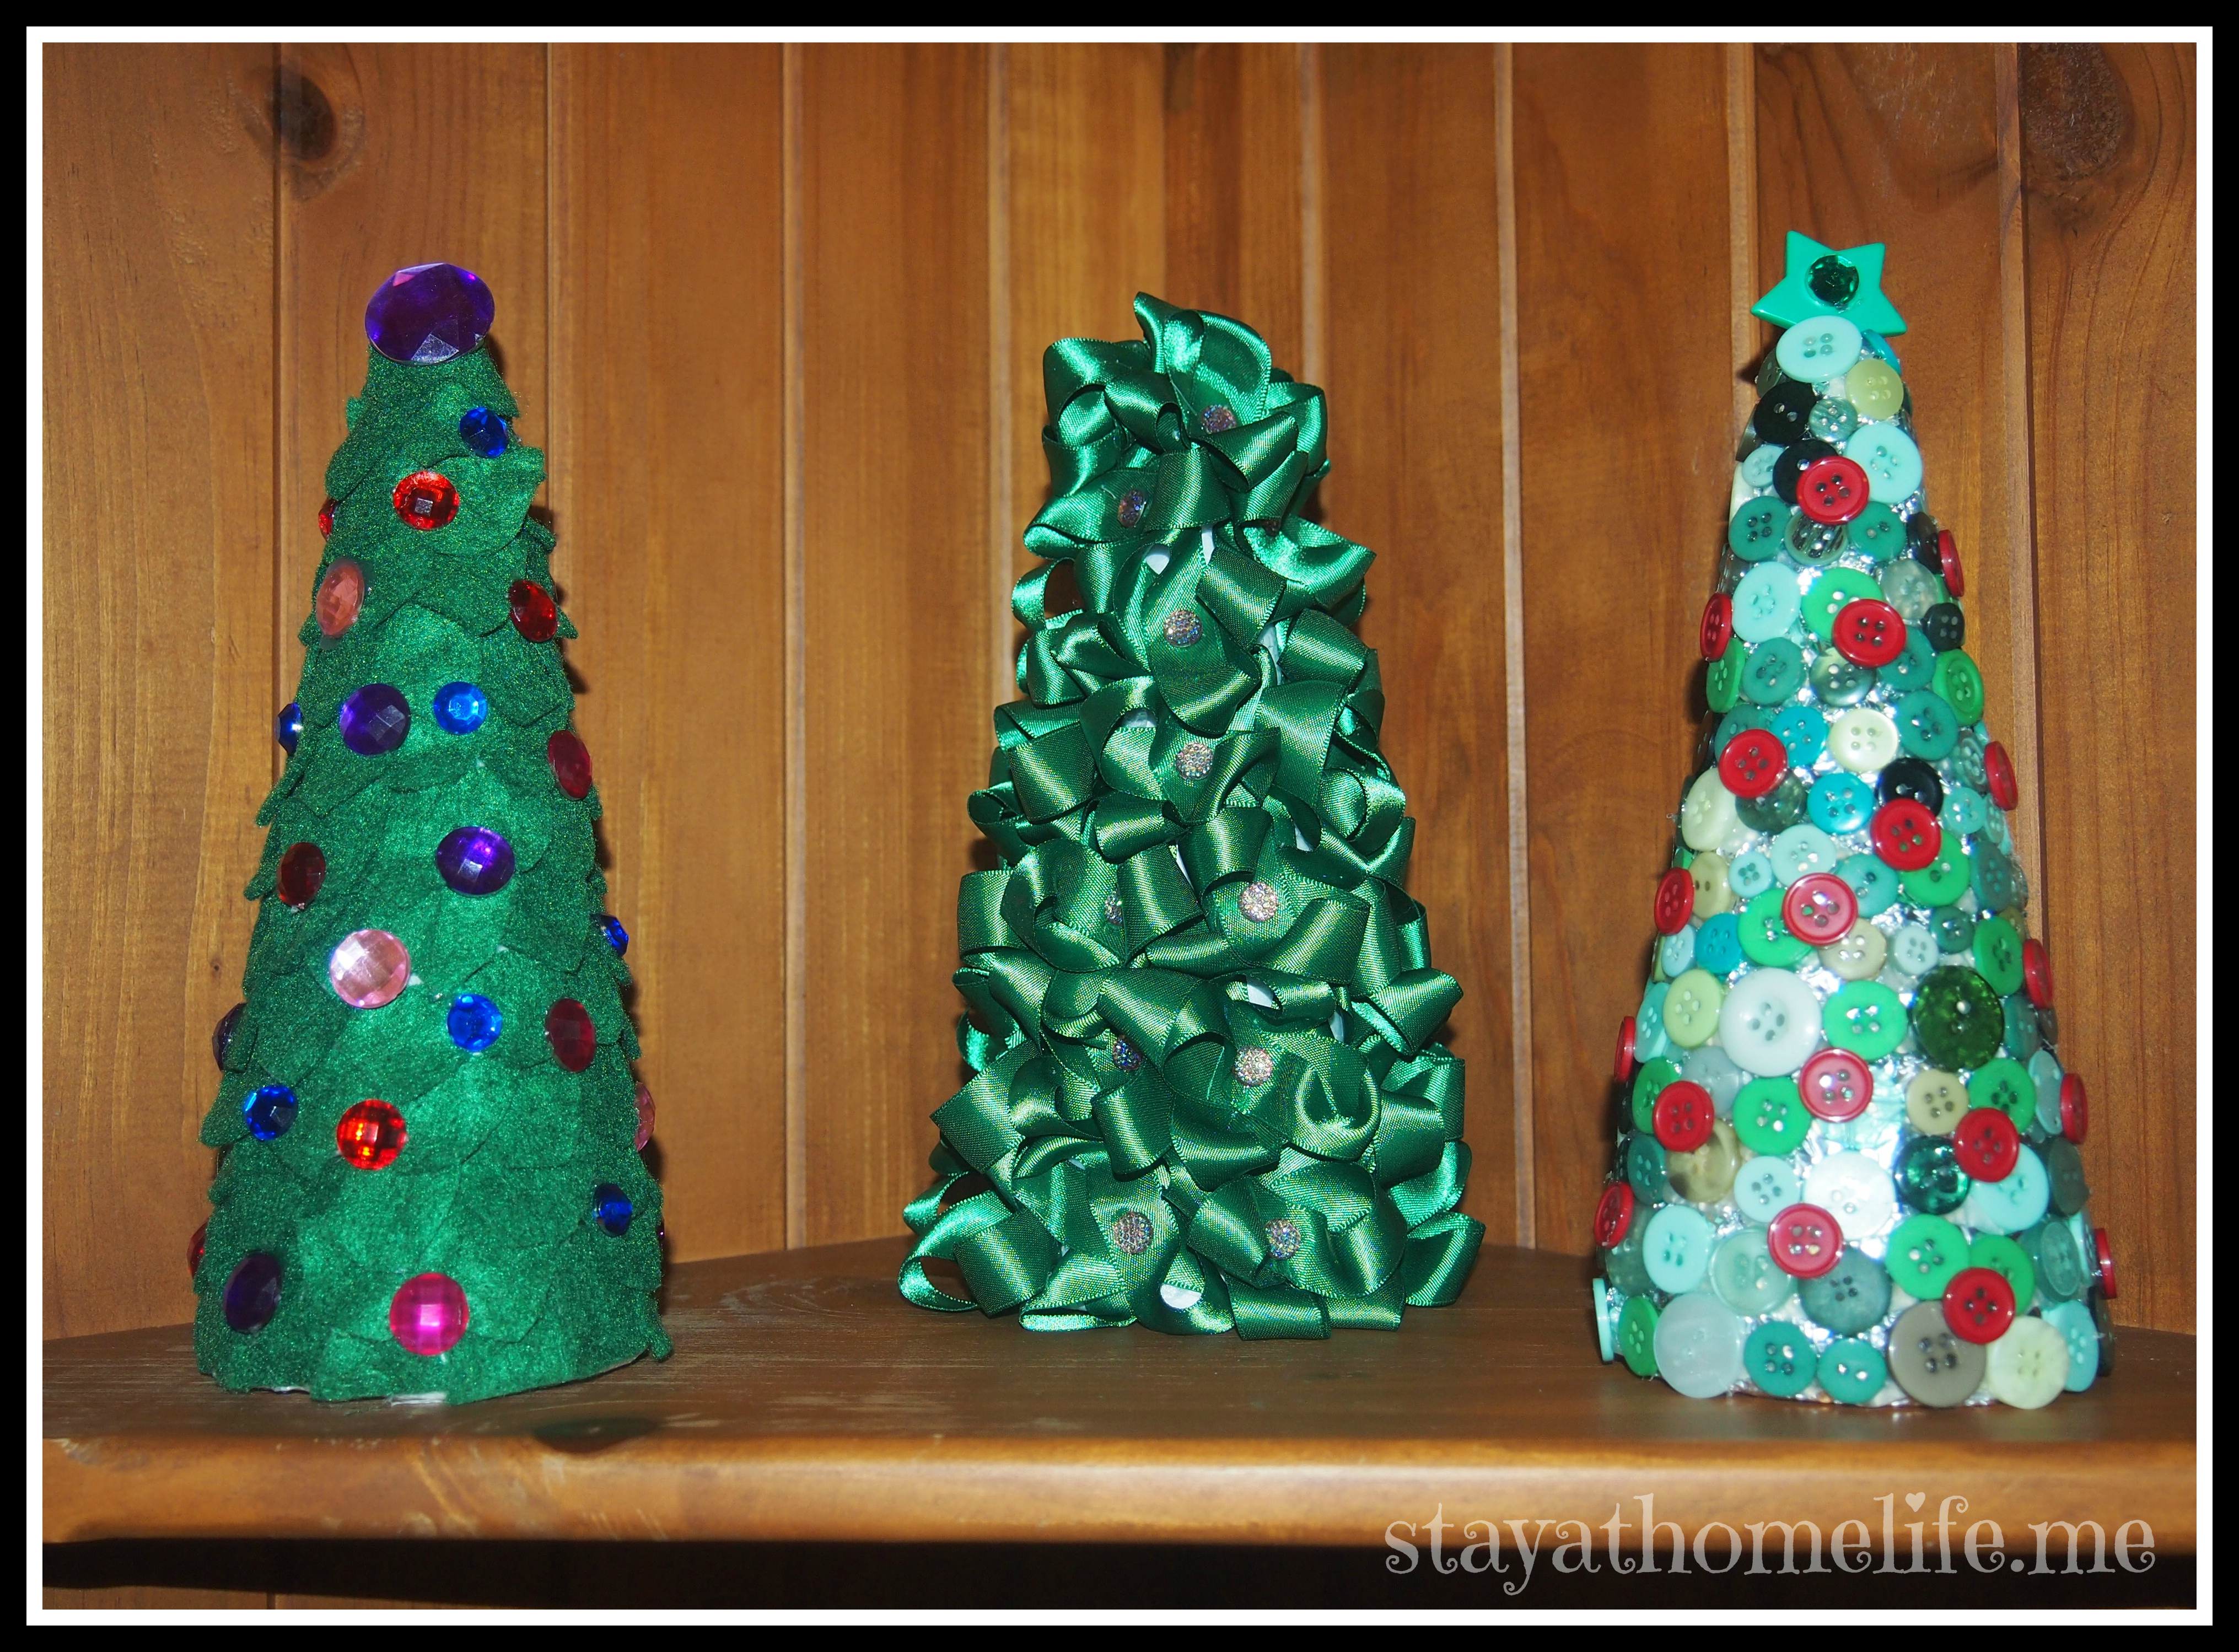 olympus digital camera - Mini Christmas Tree Decorations